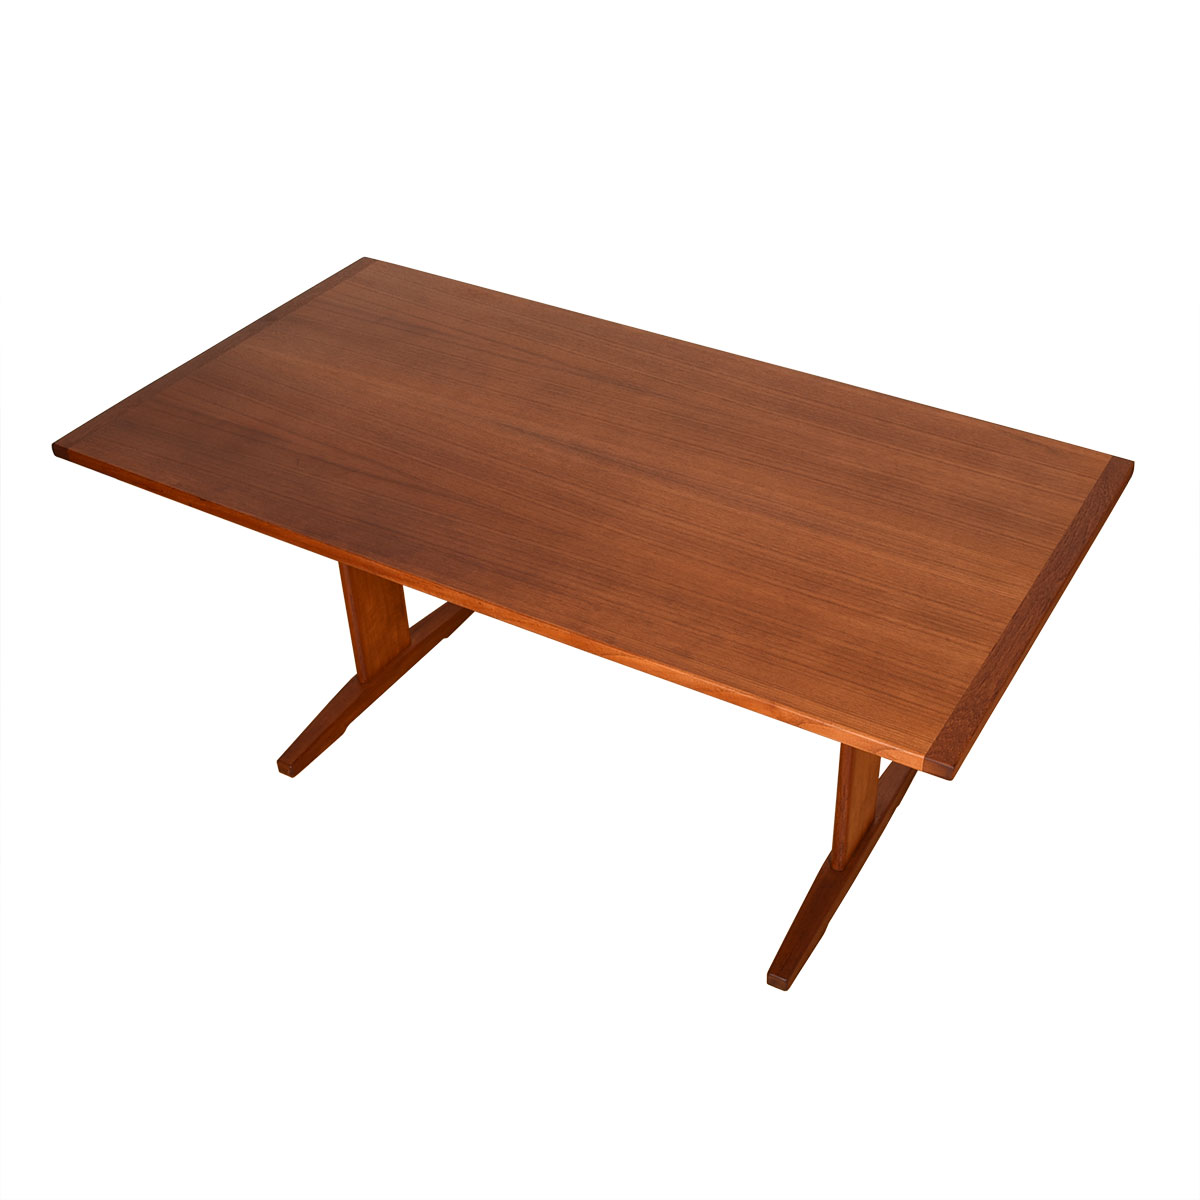 Danish Modern Trestle Table in Teak